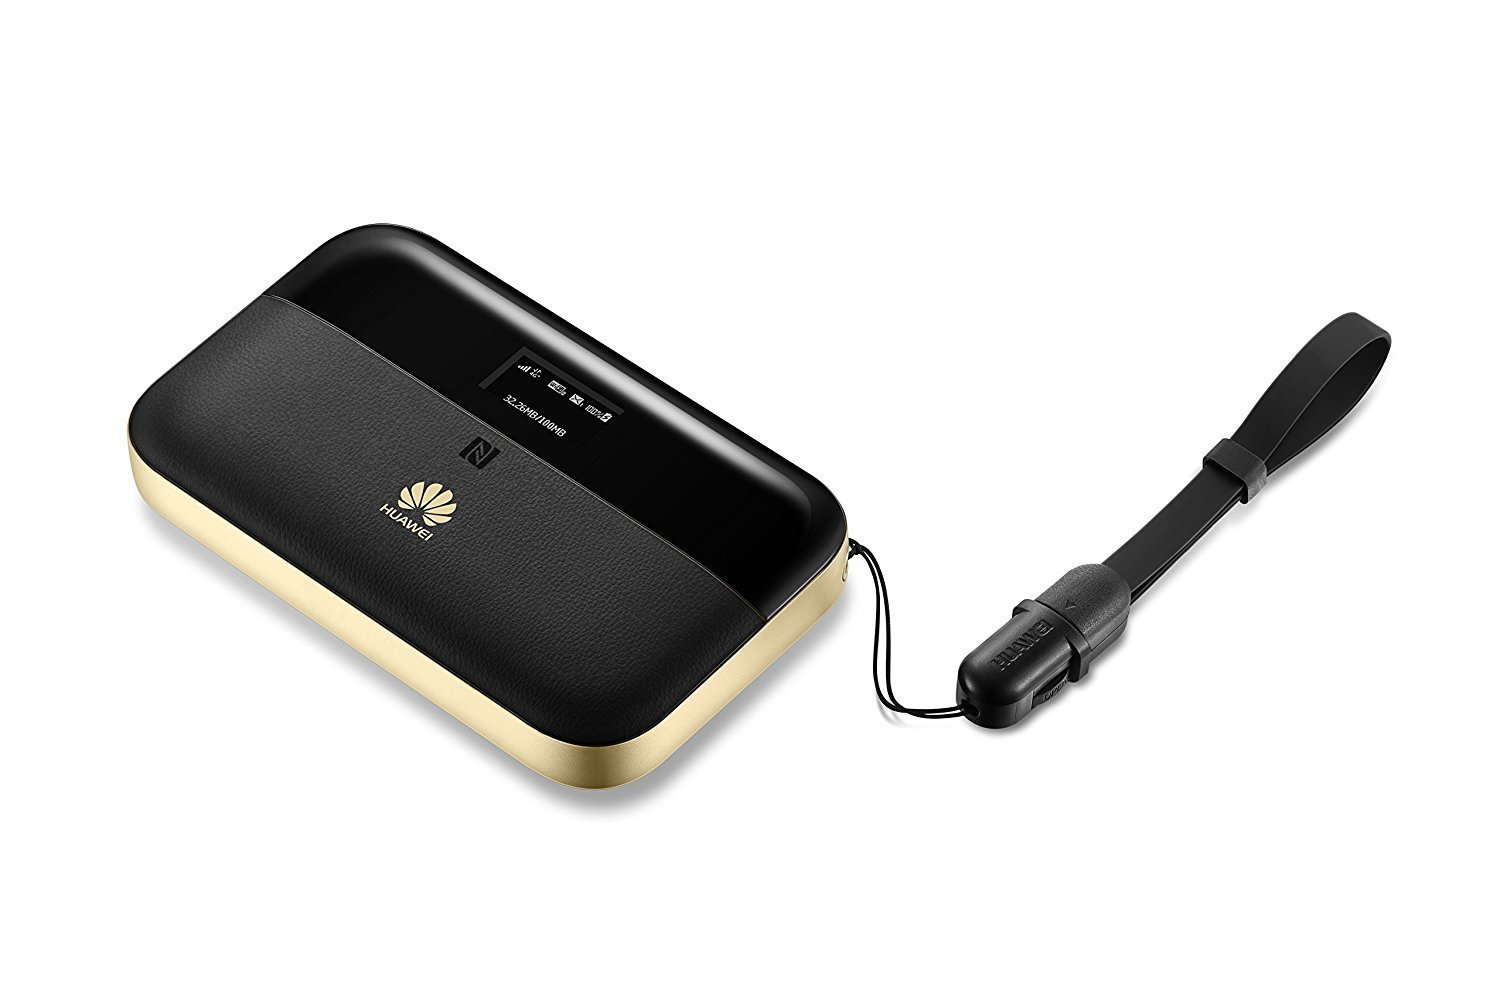 Huawei E5885Ls-93a 300 Mbps 4G LTE Mobile WiFi (4G LTE globally, including AT&T and T-Mobile, 25 hours work time) (Black)